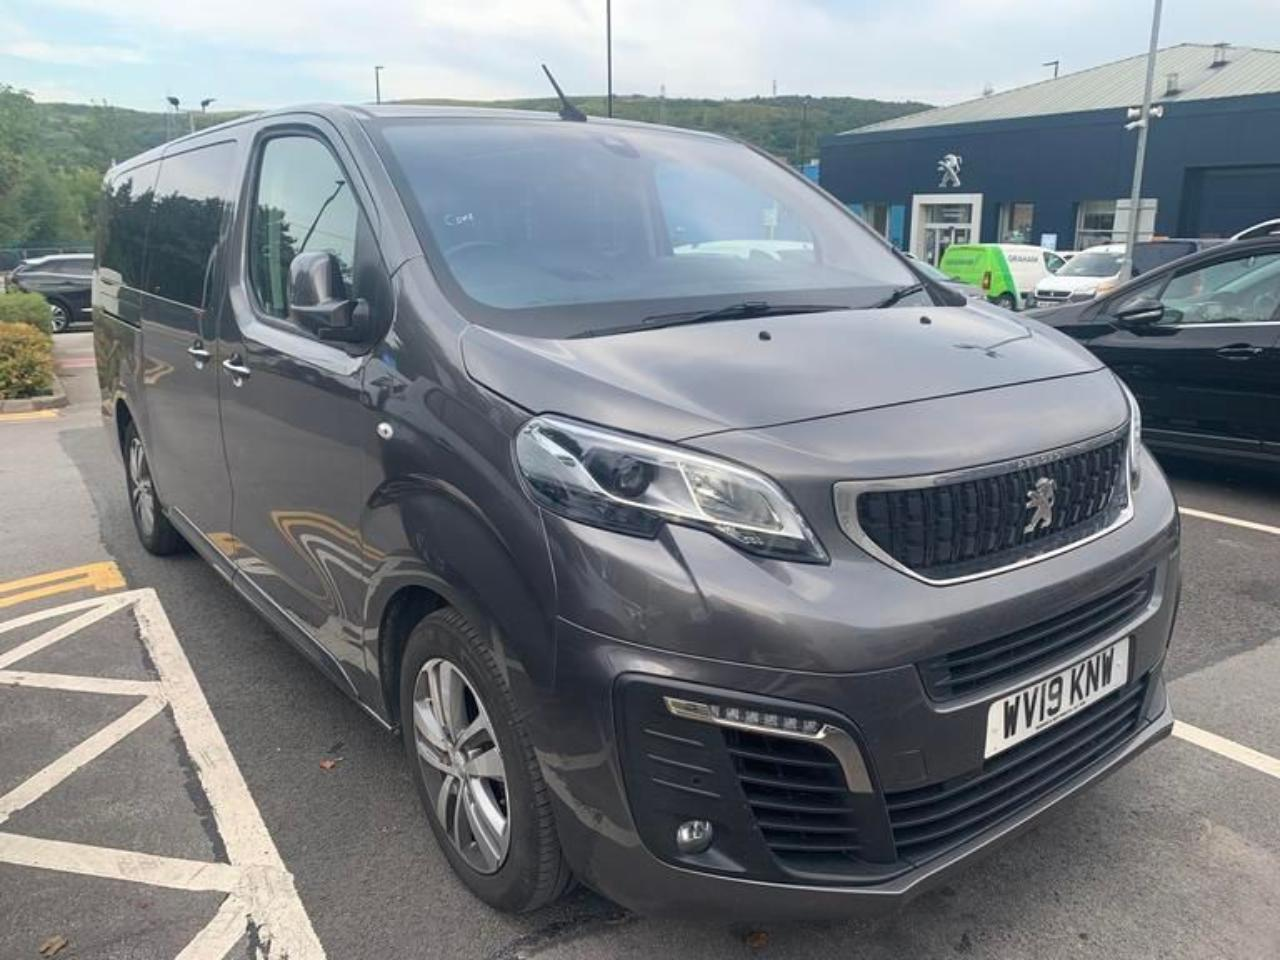 Peugeot Traveller 2.0 BlueHDi Allure Long MPV (s/s) 5dr (8 Seat)